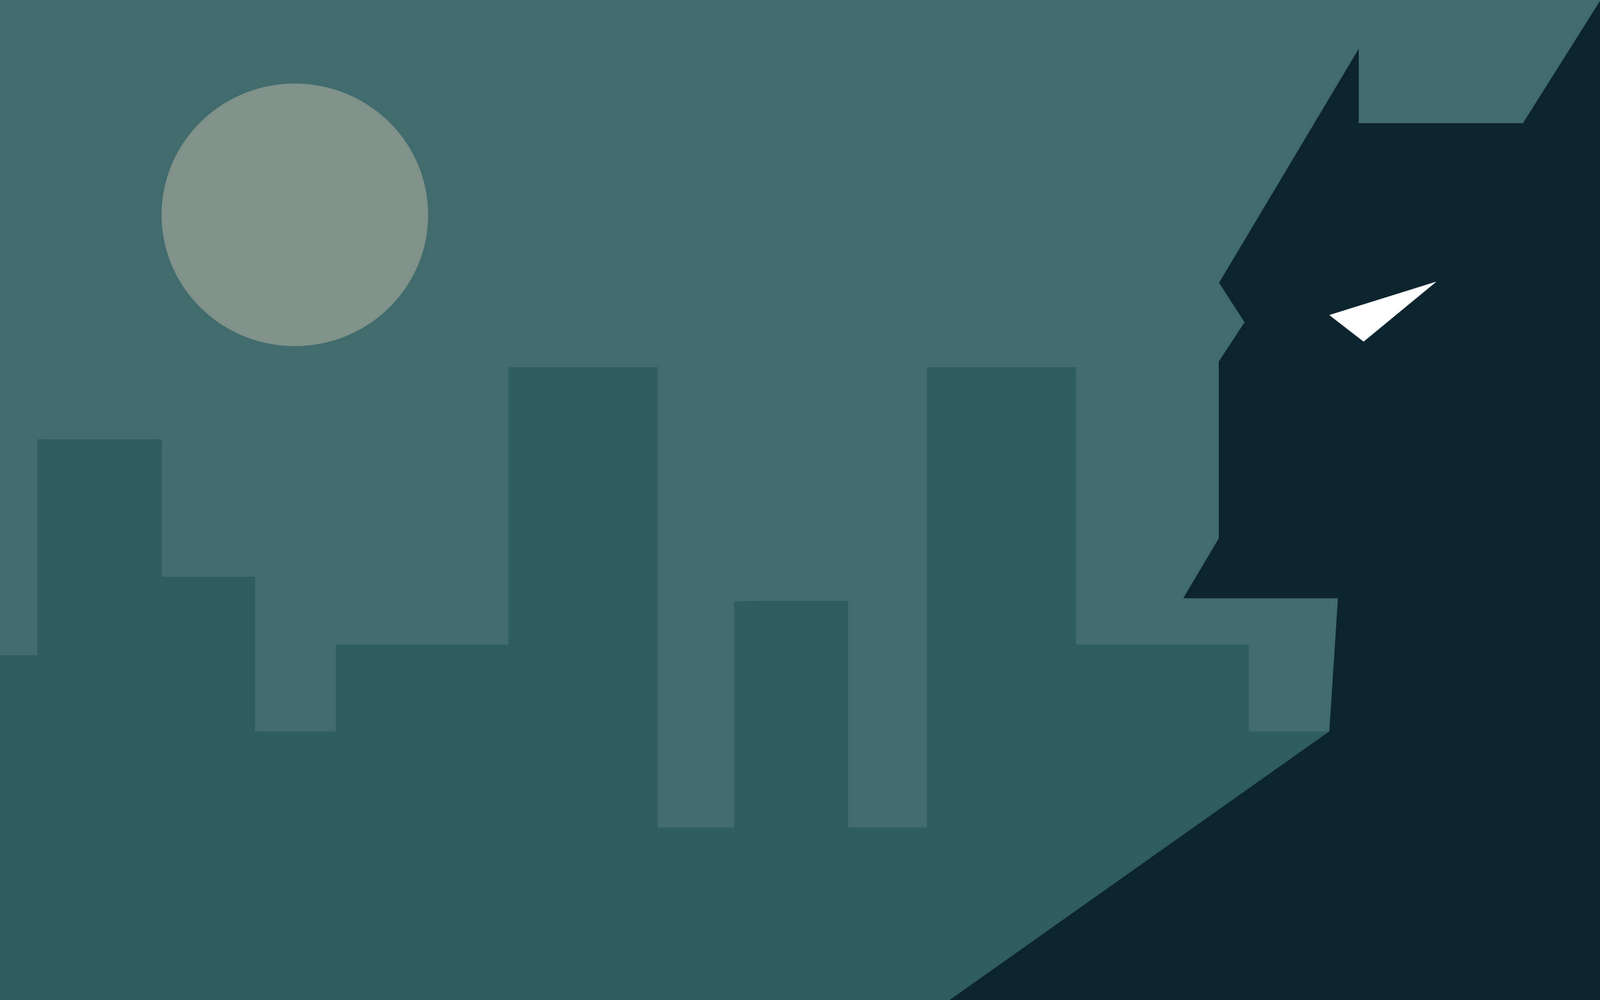 batman minimalist wallpaper download - photo #19